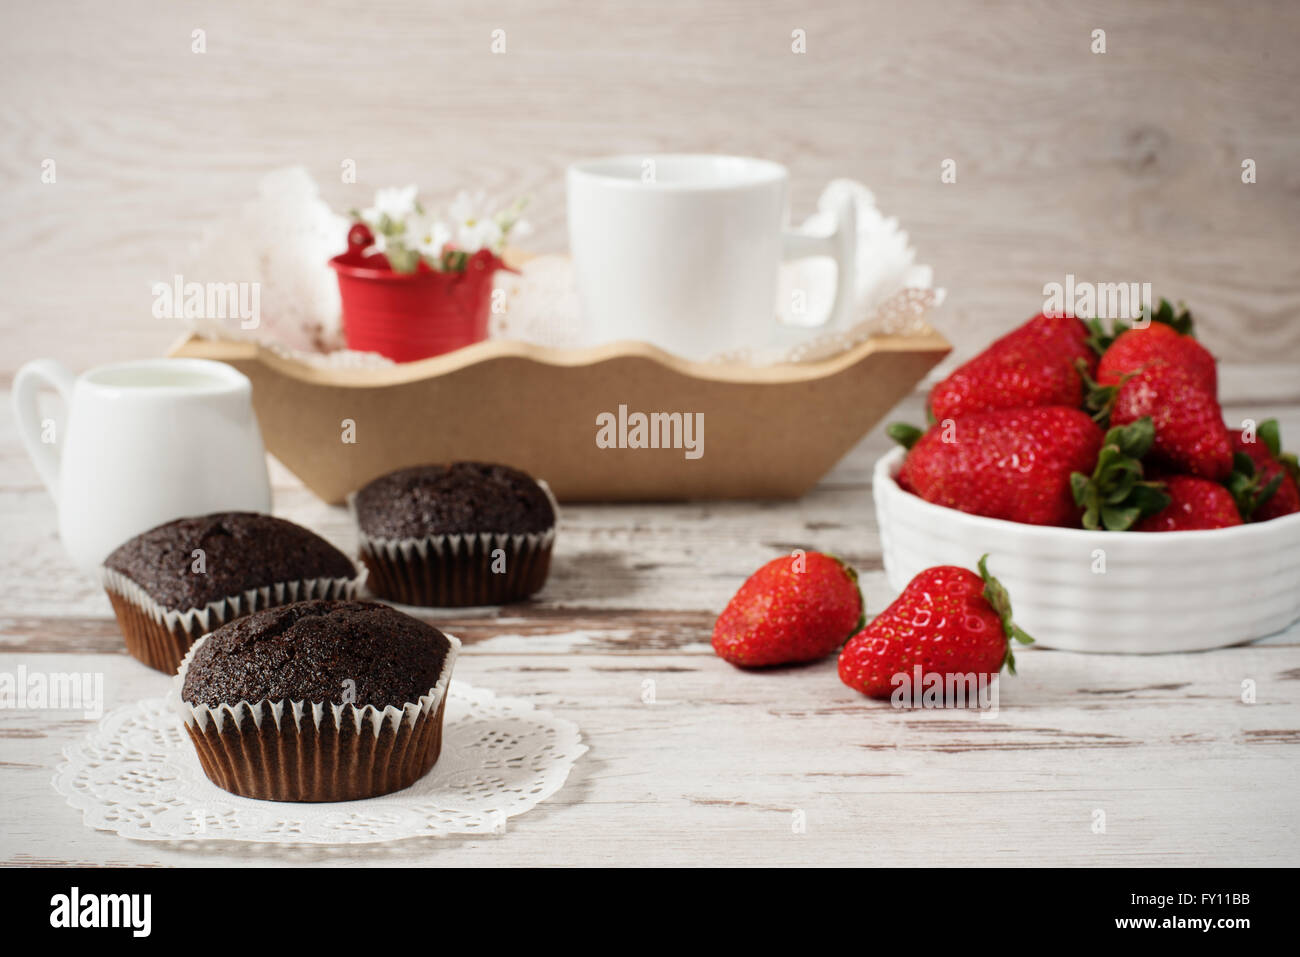 Chocolate muffins, coffee, strawberries, a vase of white flowers. Light wood rustic background - Stock Image